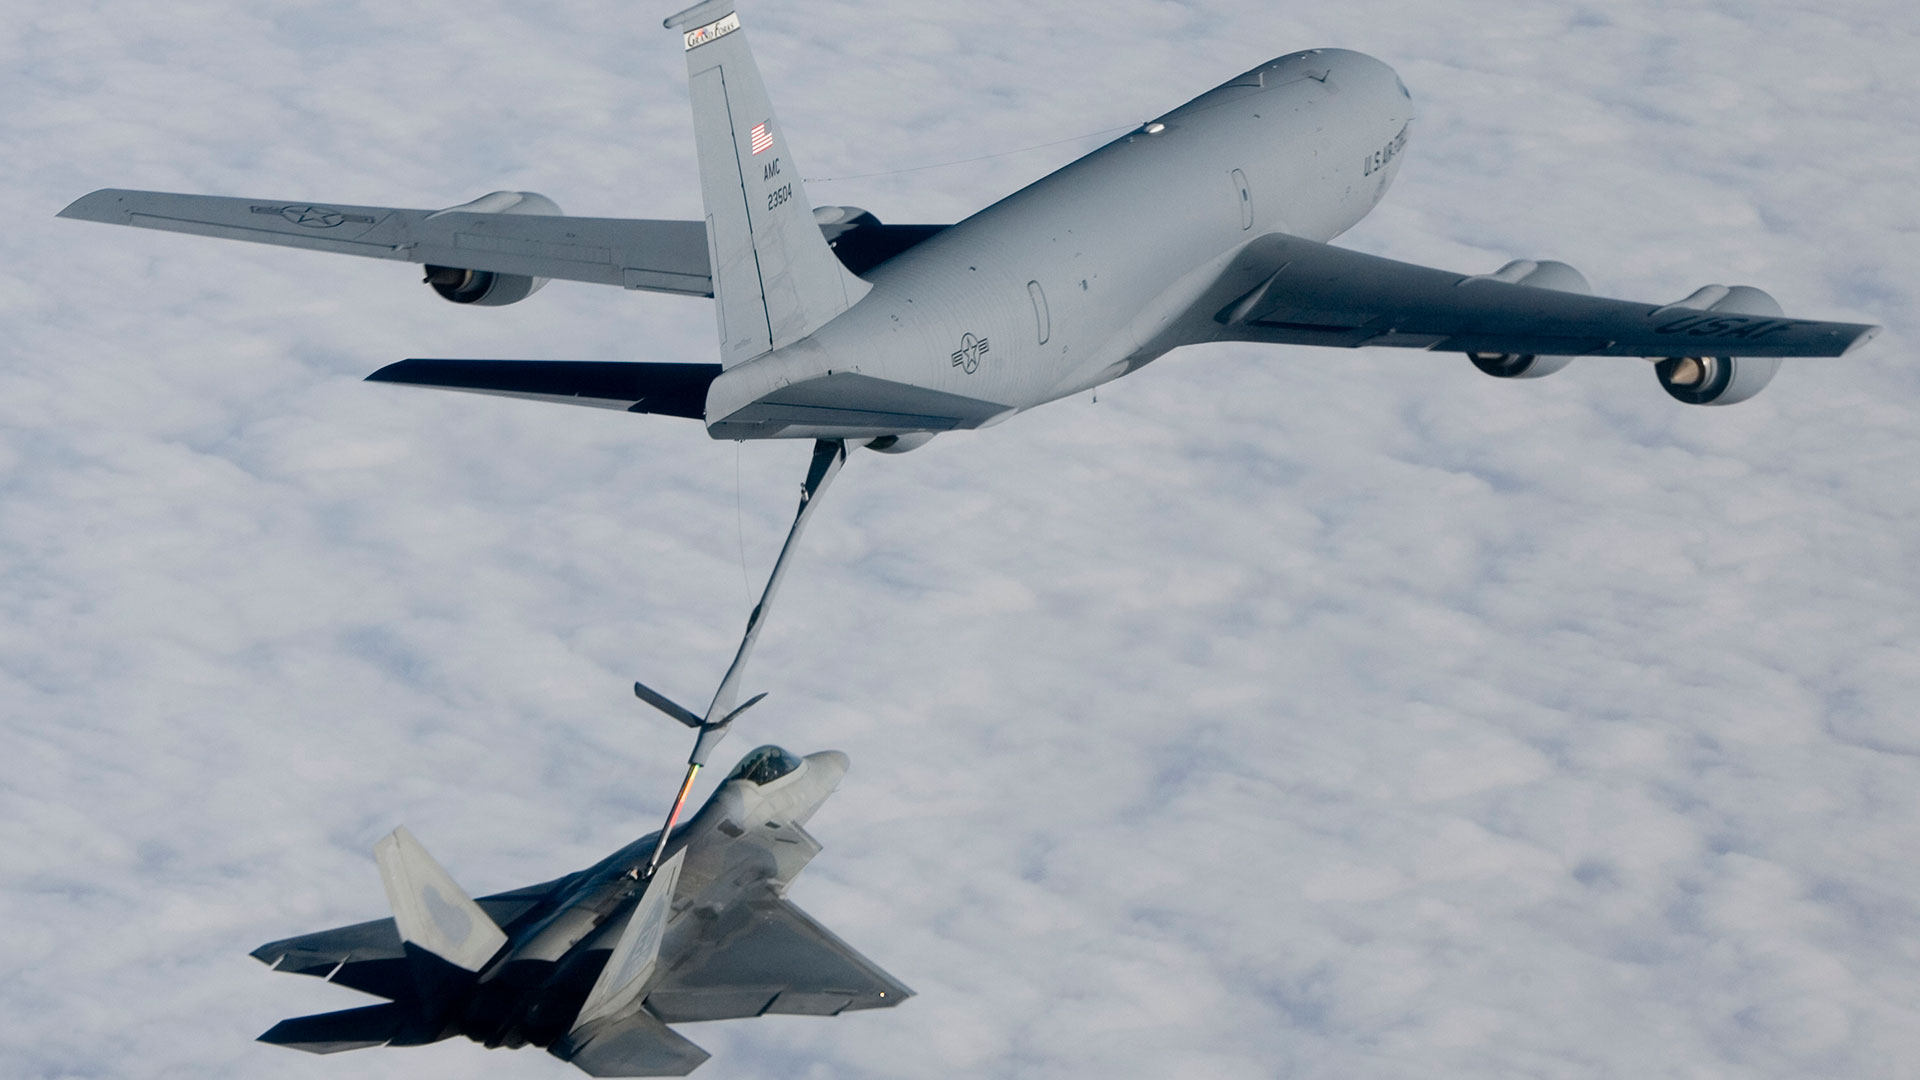 Tanker refueling fighter jet